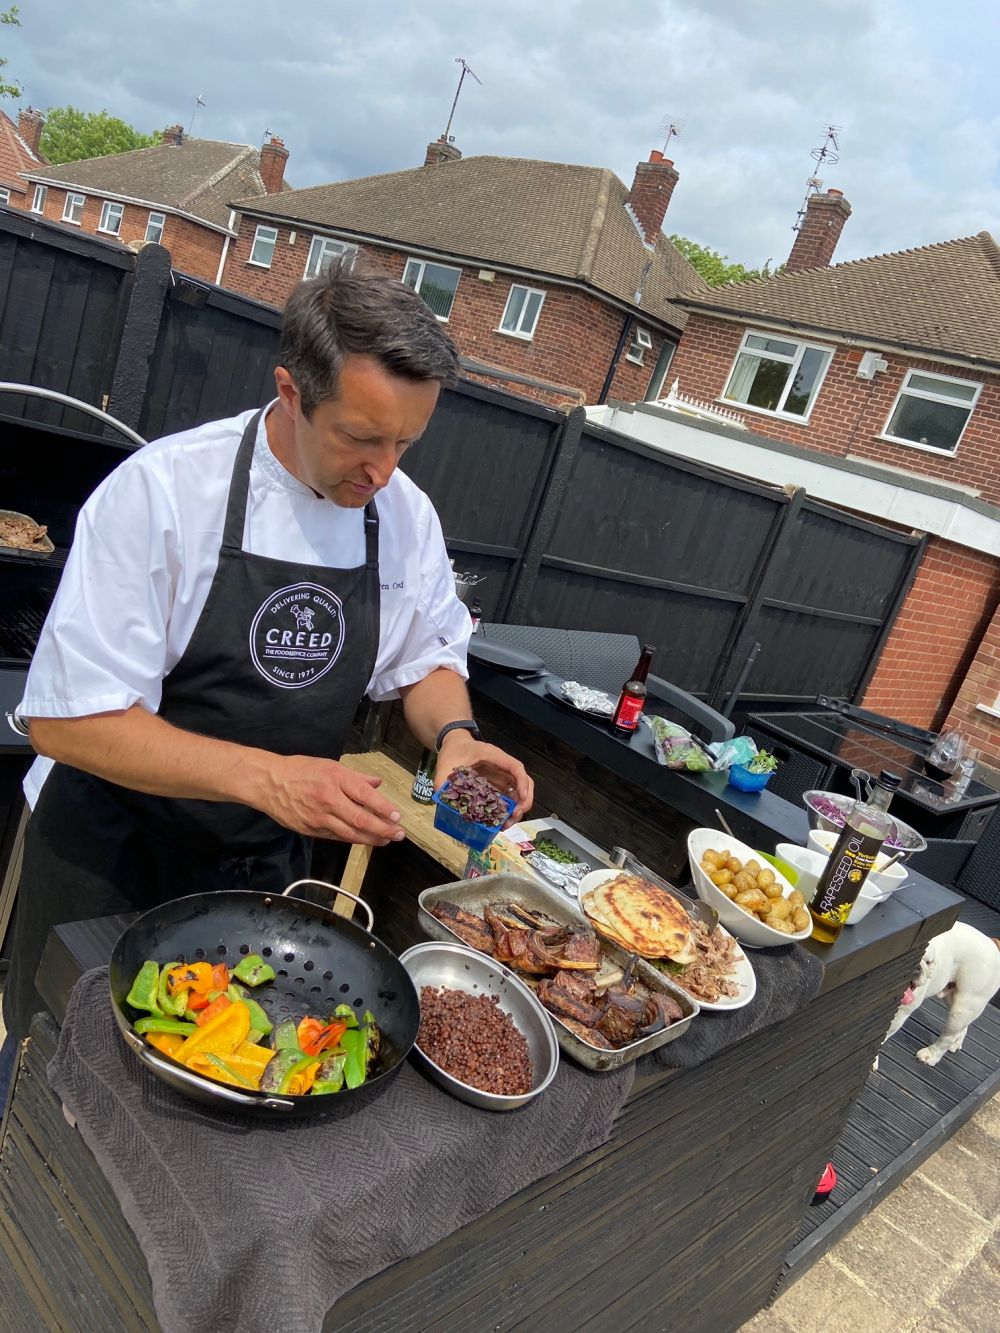 Loughborough College chef joins live line up at virtual food festival